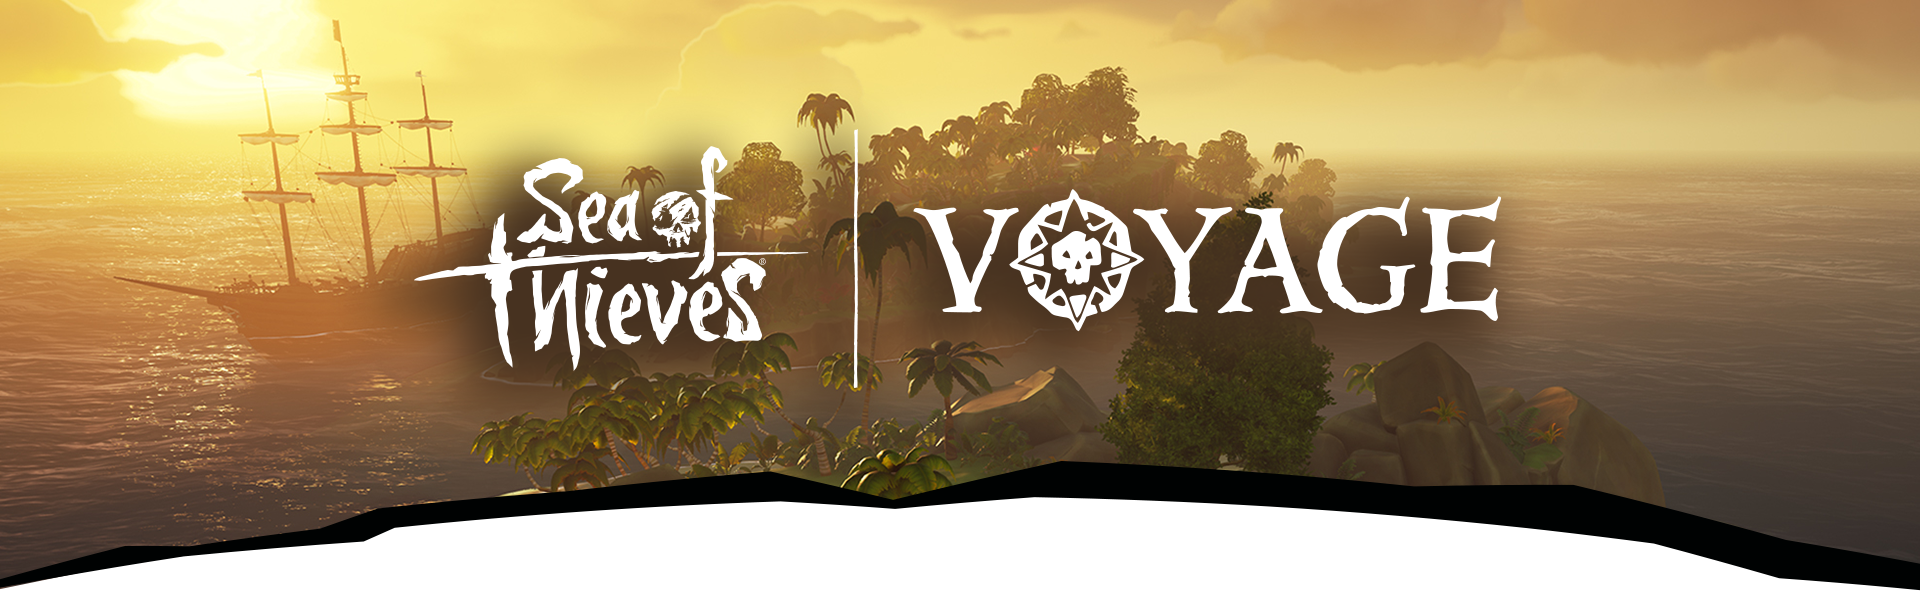 image from the game Sea of Thieves hero | The Voyage